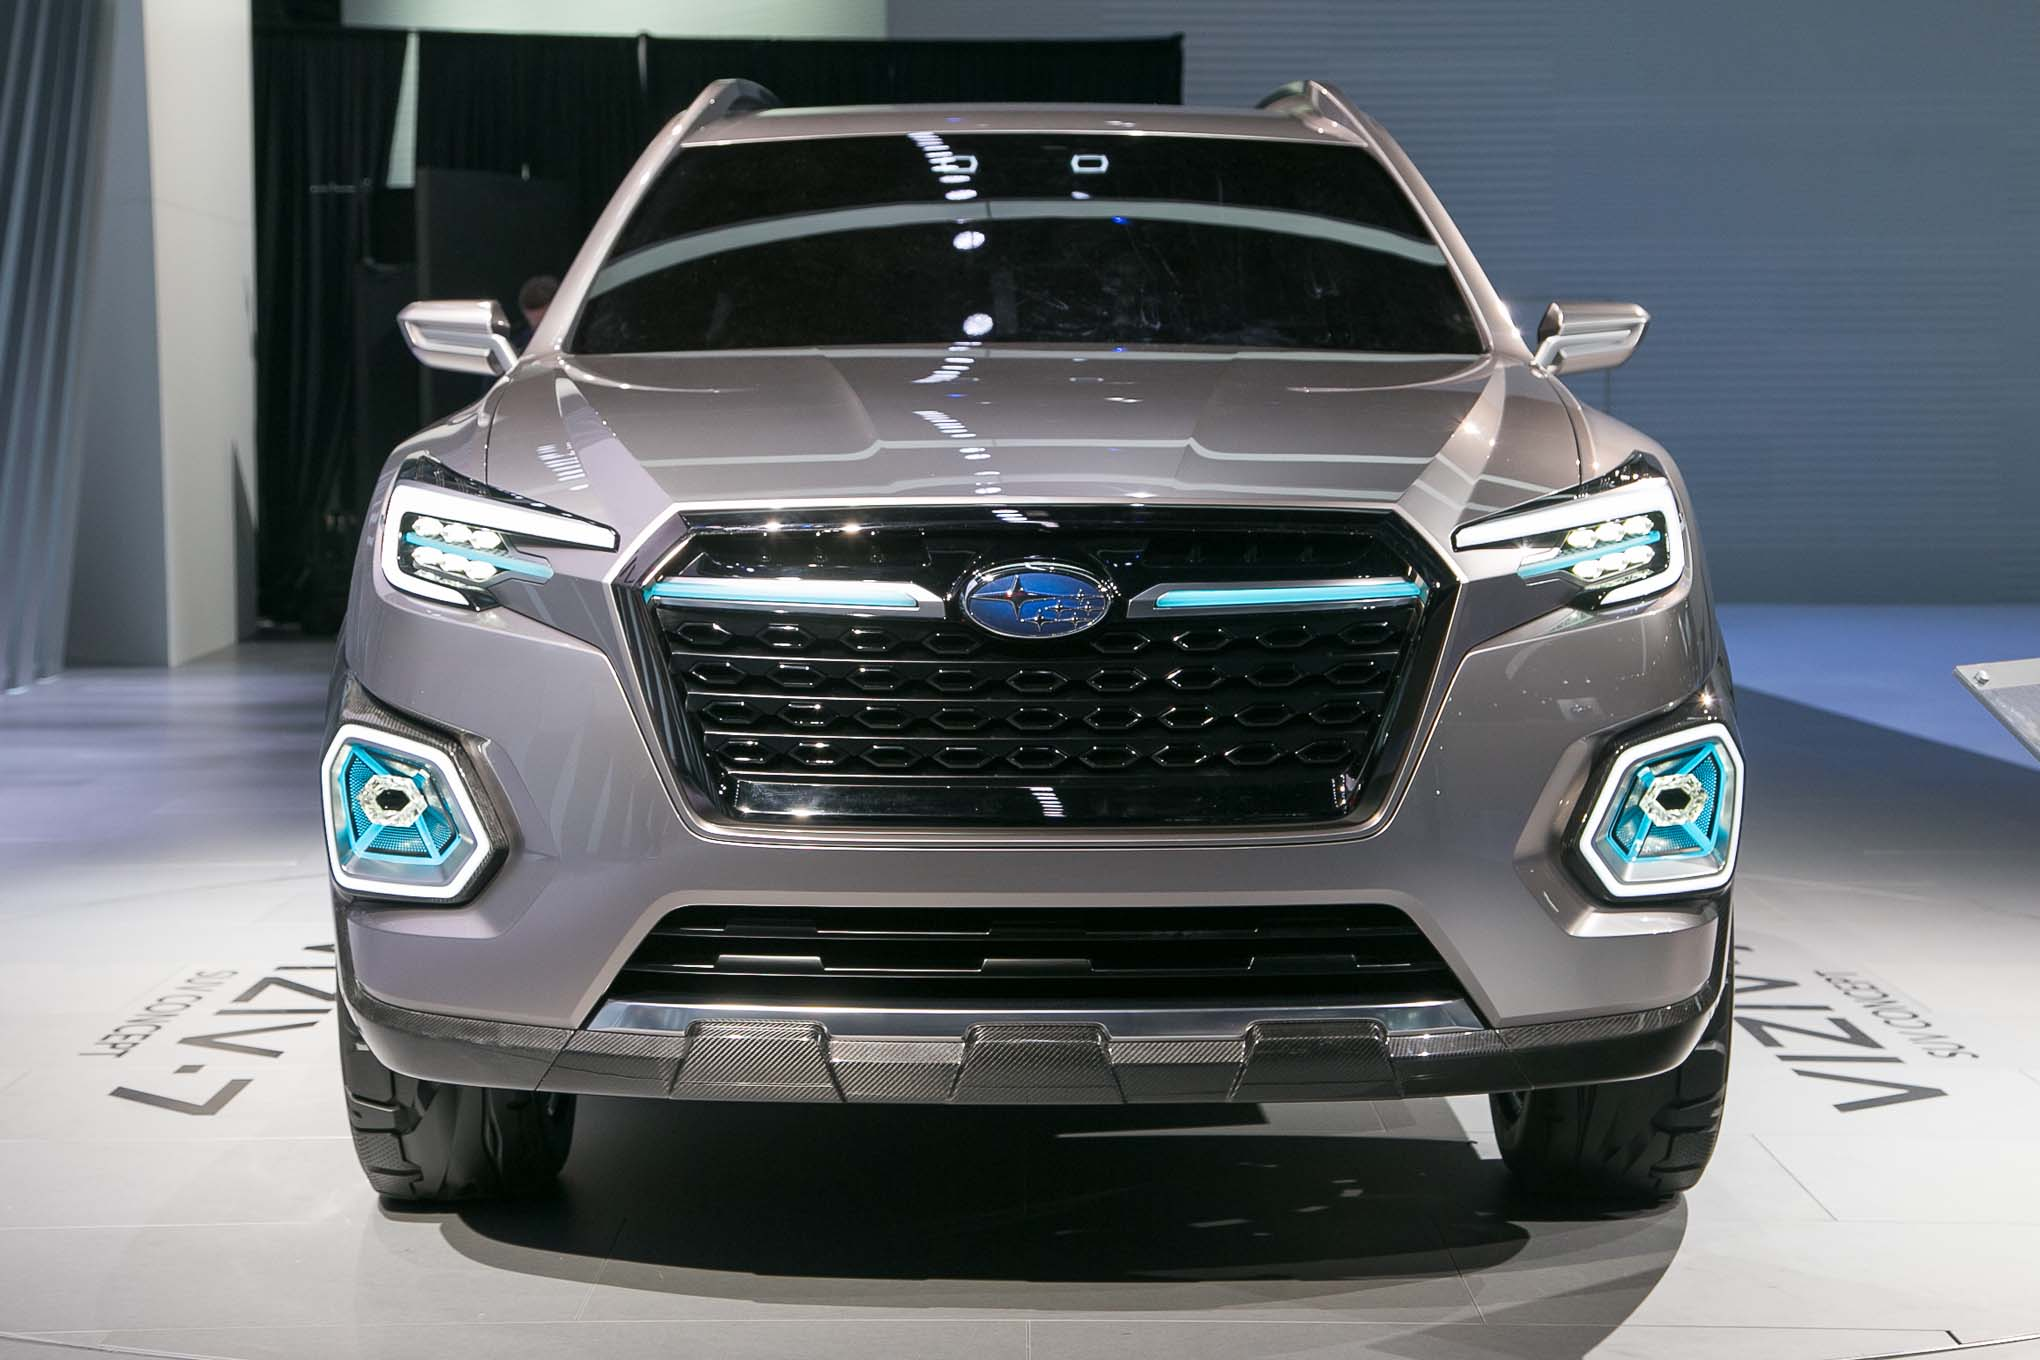 First Look: Subaru Viziv-7 SUV Concept | Automobile Magazine